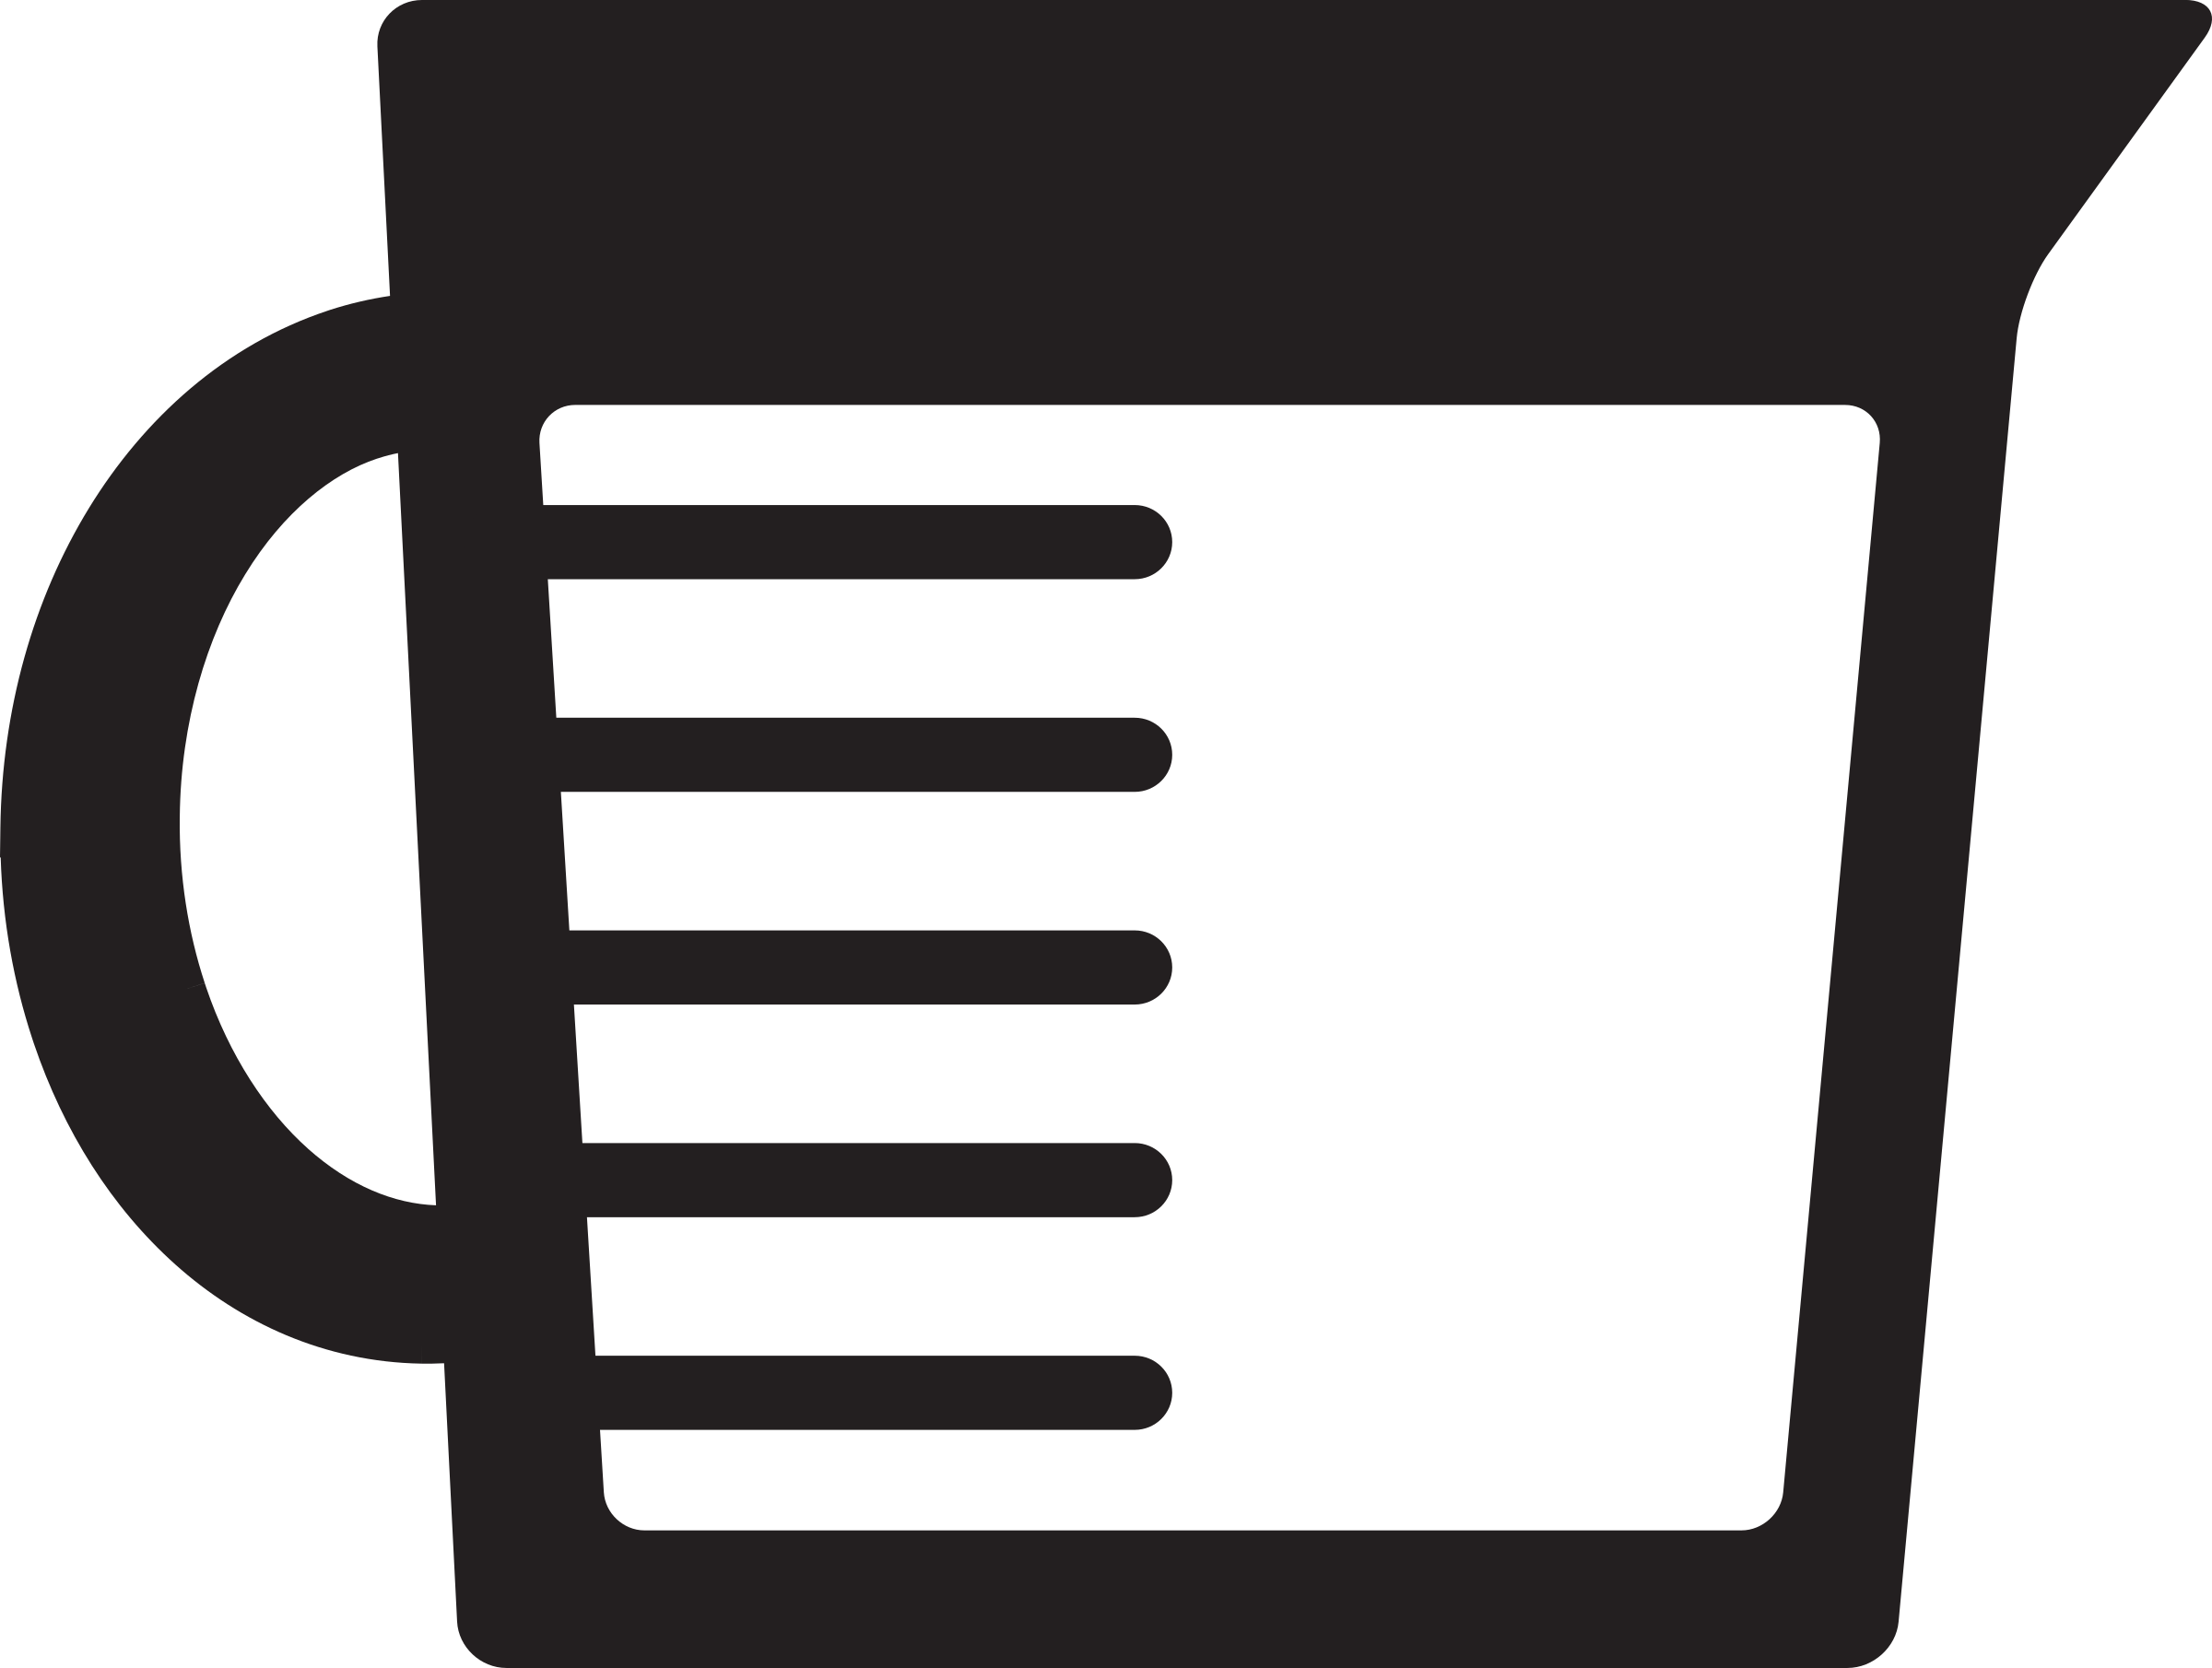 Cup clipart icon. Kitchen measuring big image